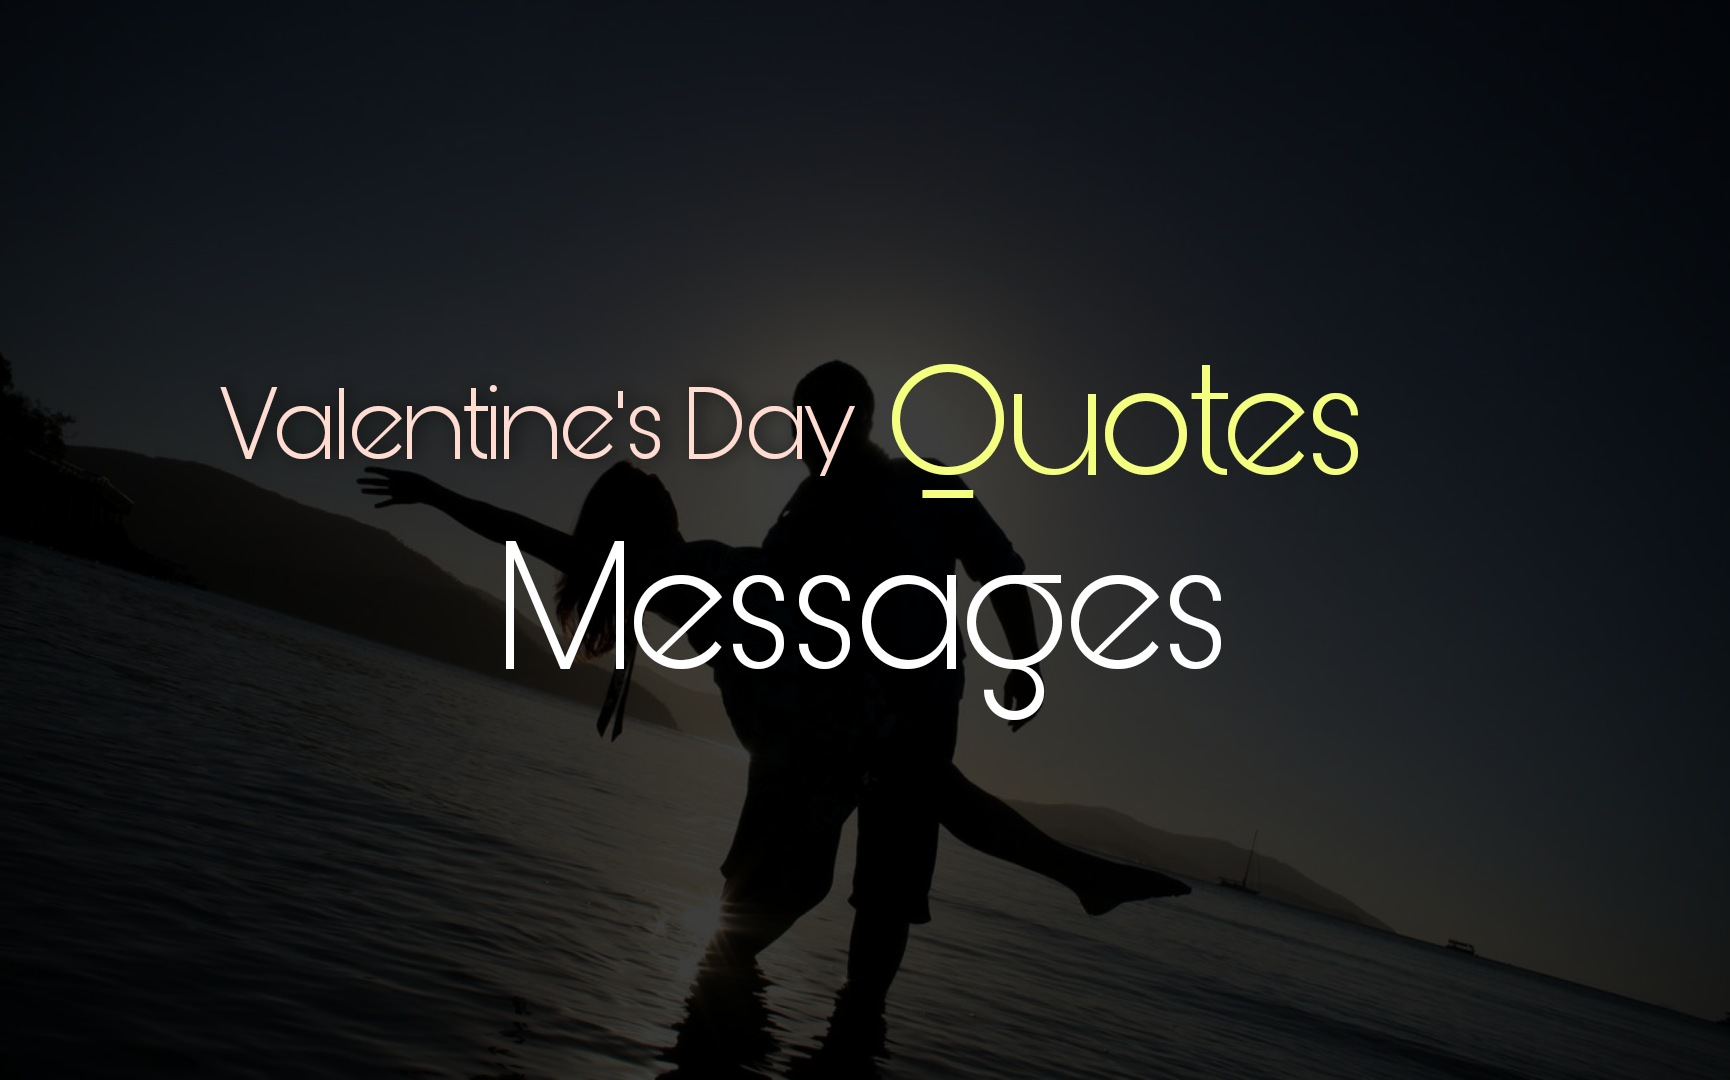 Valentine's Day Quotes Wishes Messages For Whatsapp Status